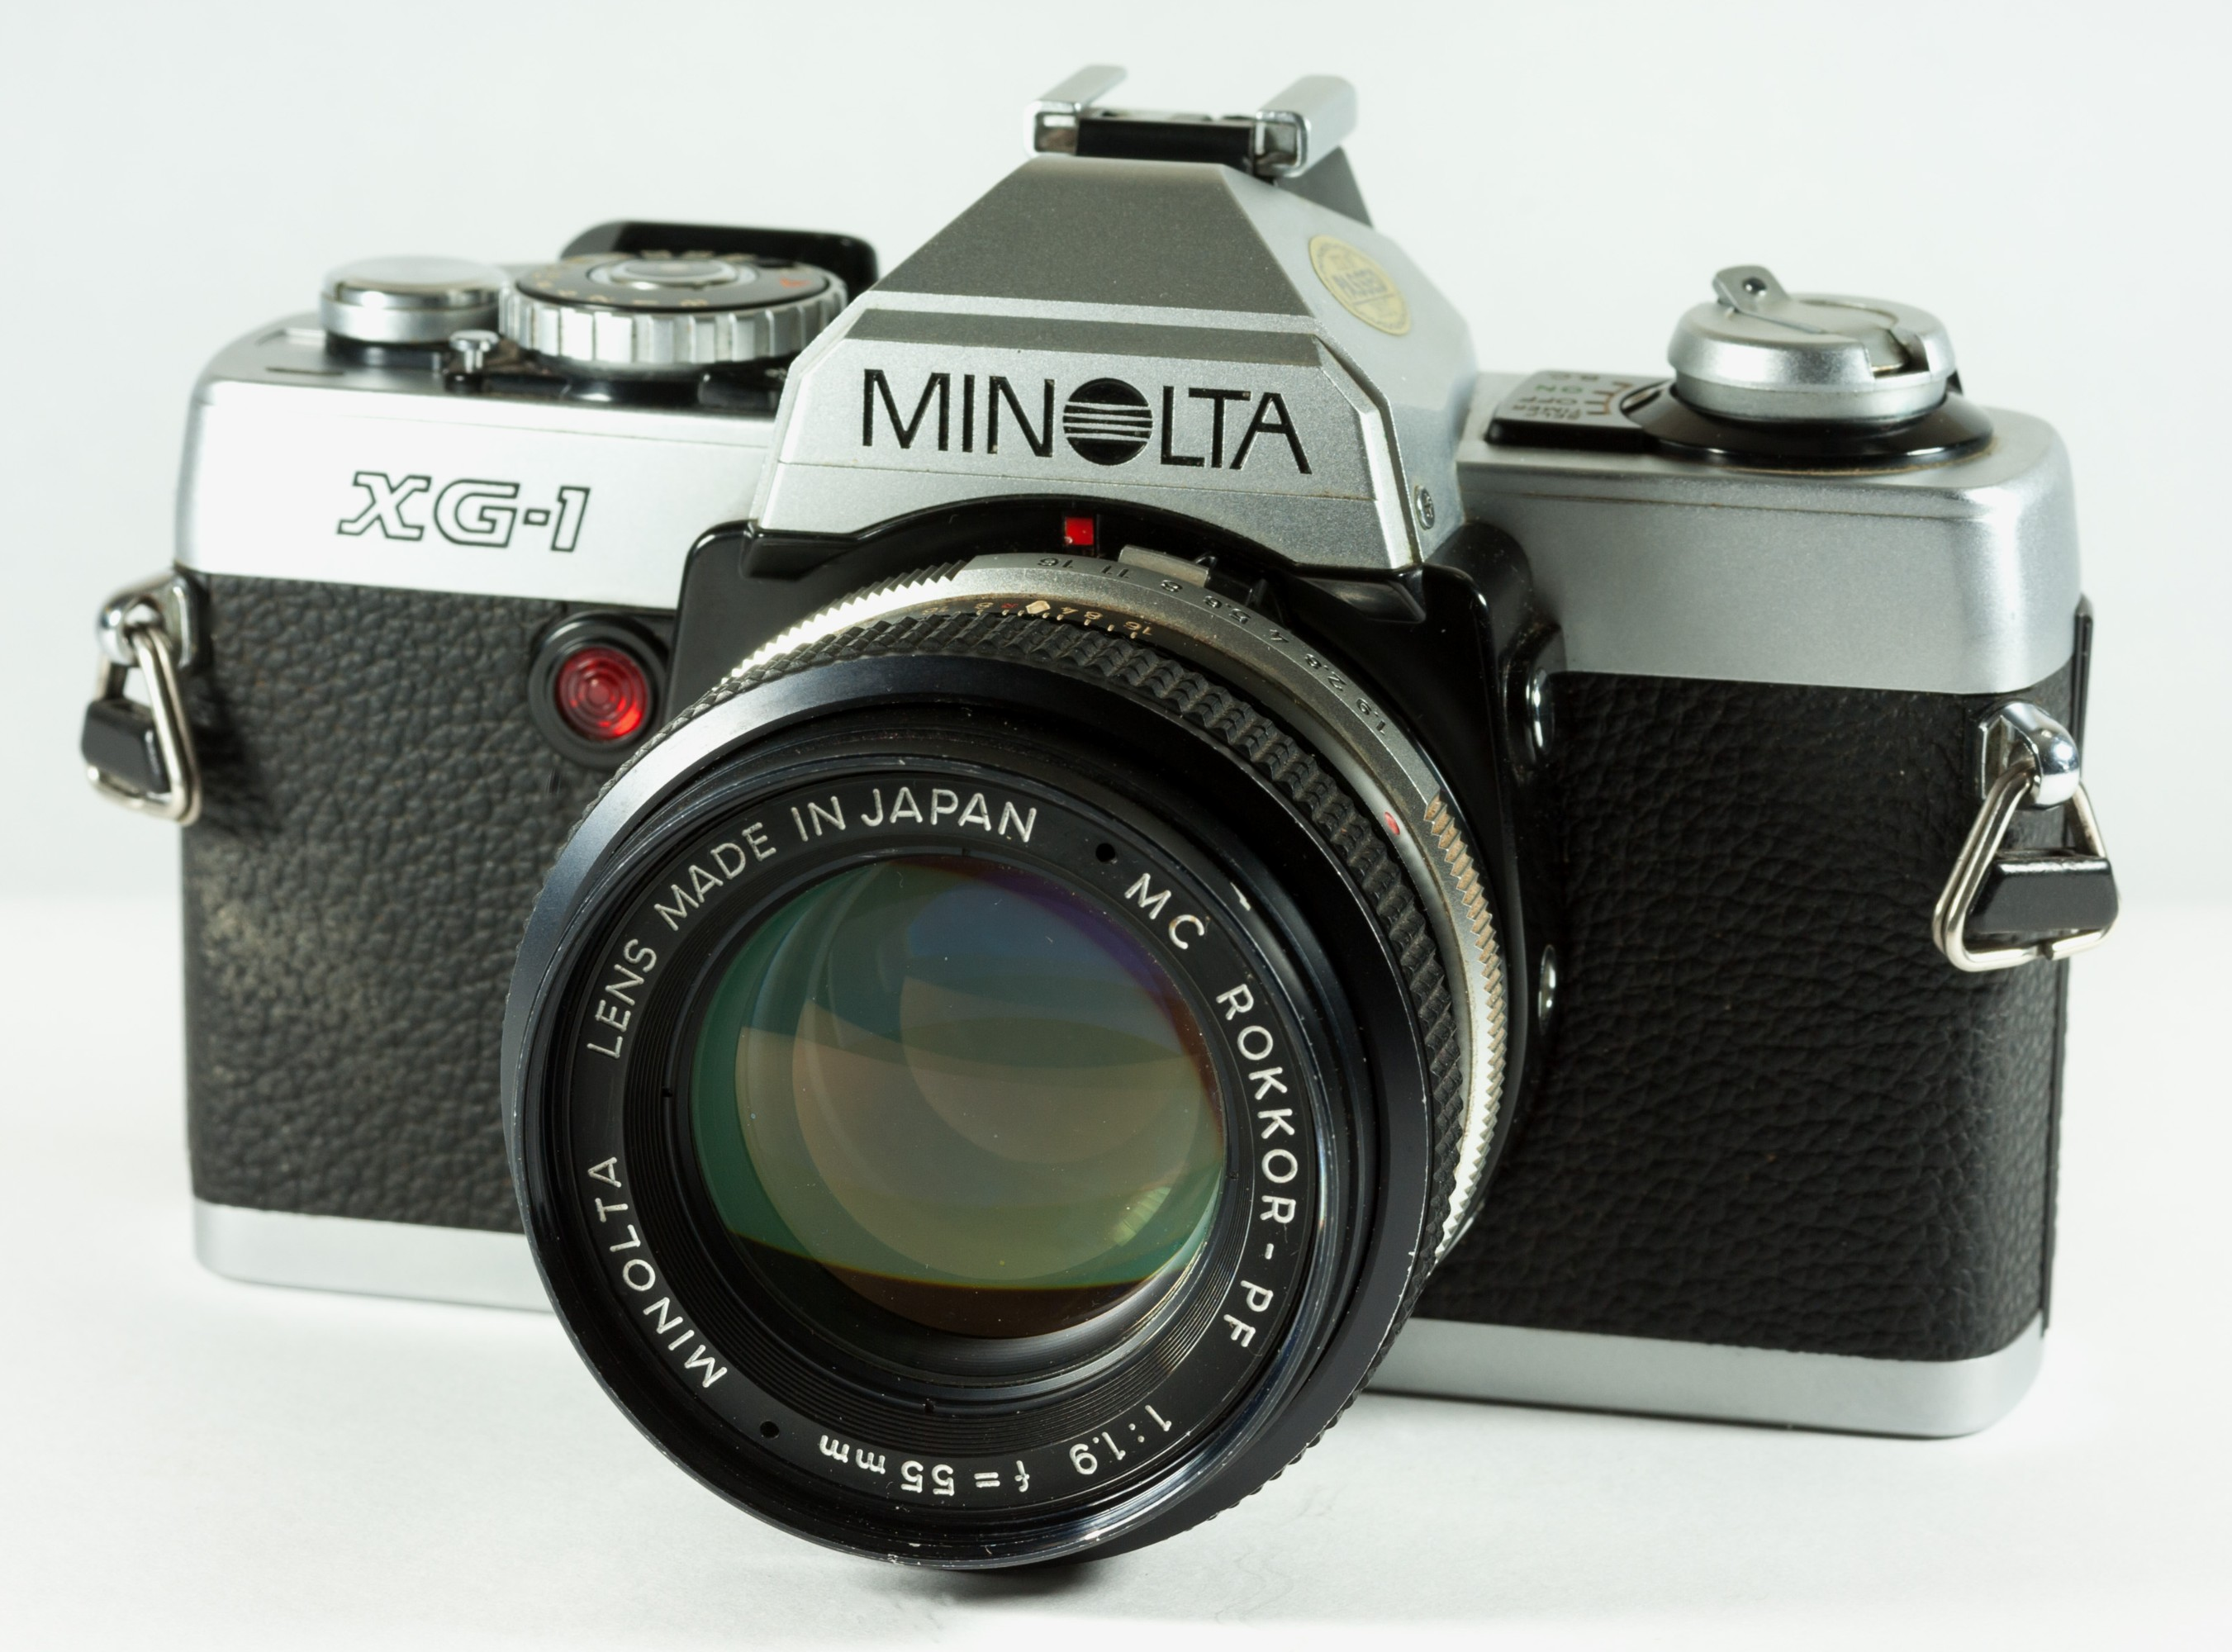 minolta xg-1 front cropped and resized.jpg